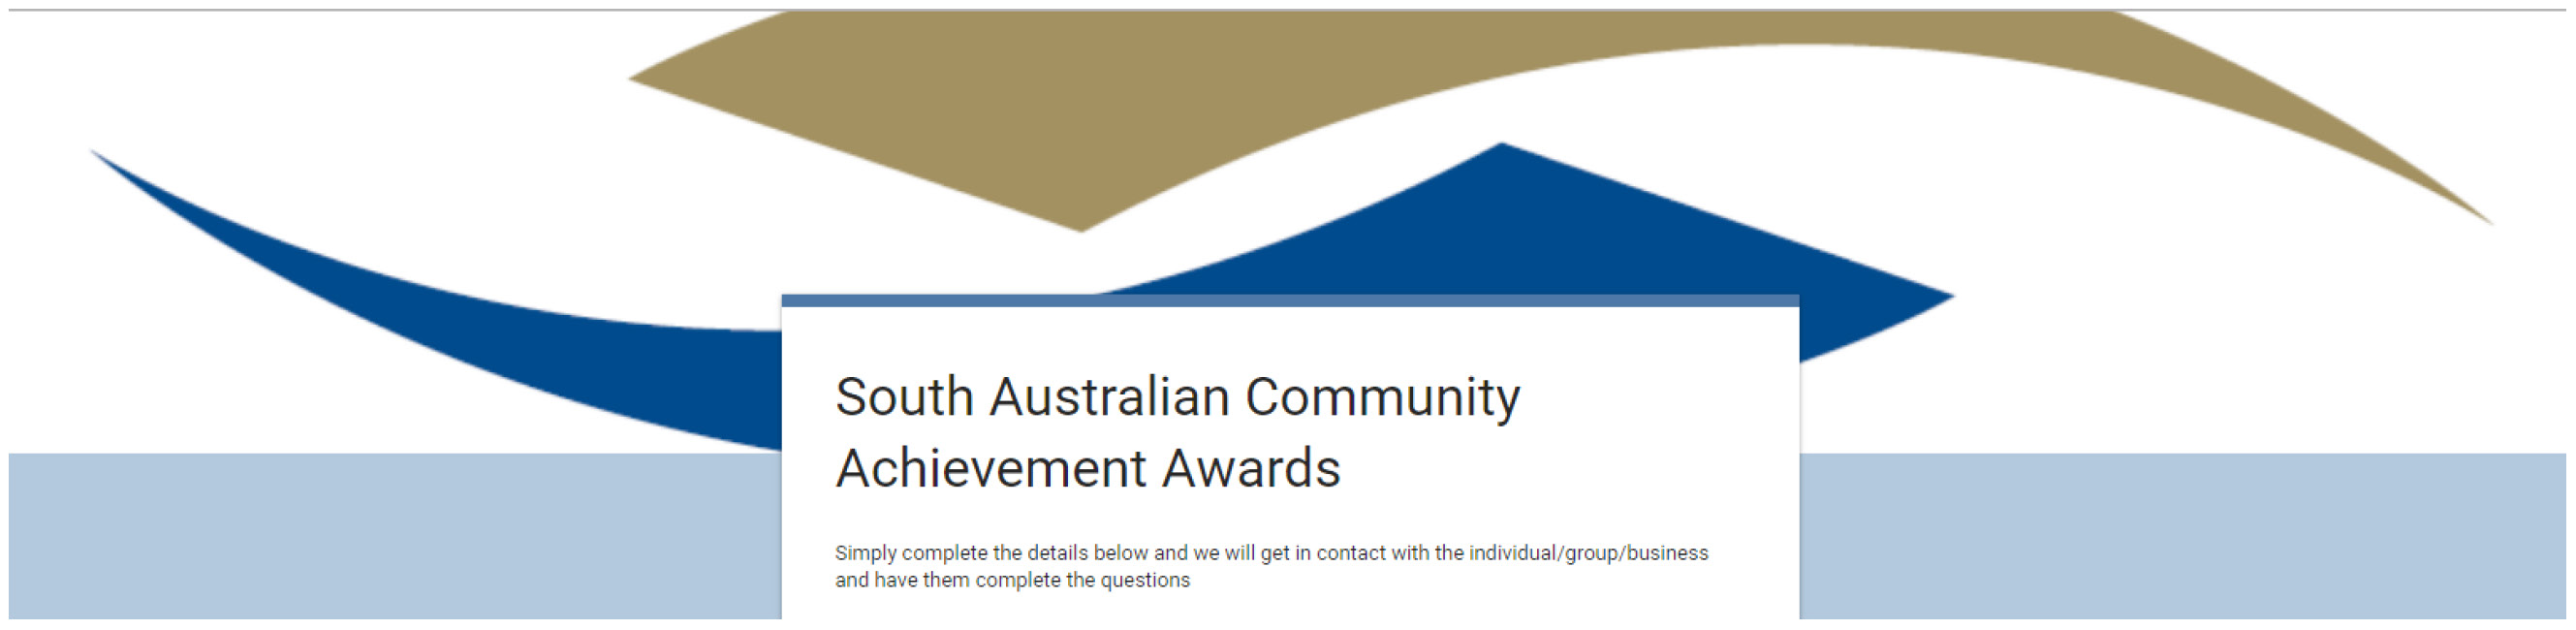 sa community achievement awards html link picture